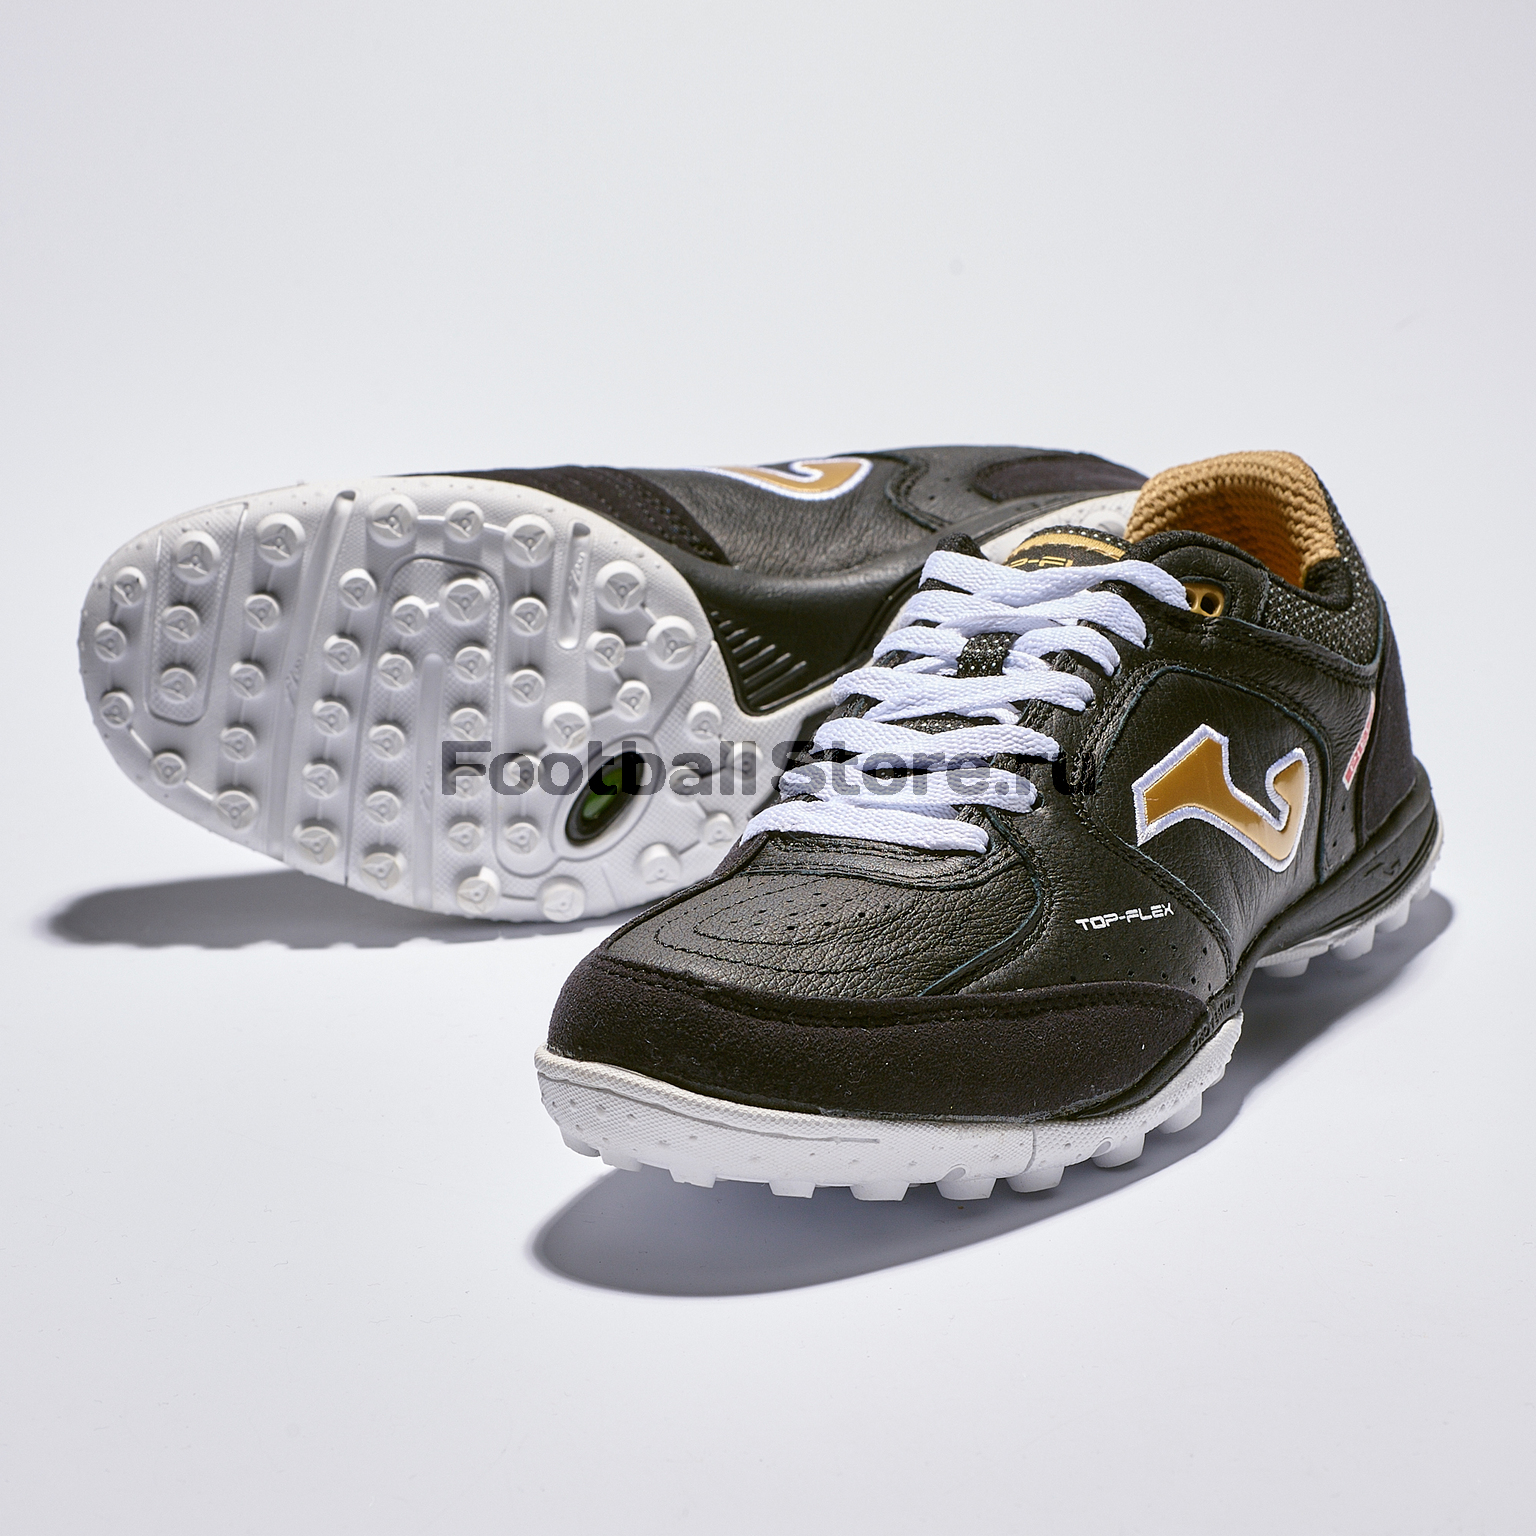 Шиповки Joma Top Flex Turf TOPW.801.TF шиповки joma шиповки joma top flex tops 703 tf